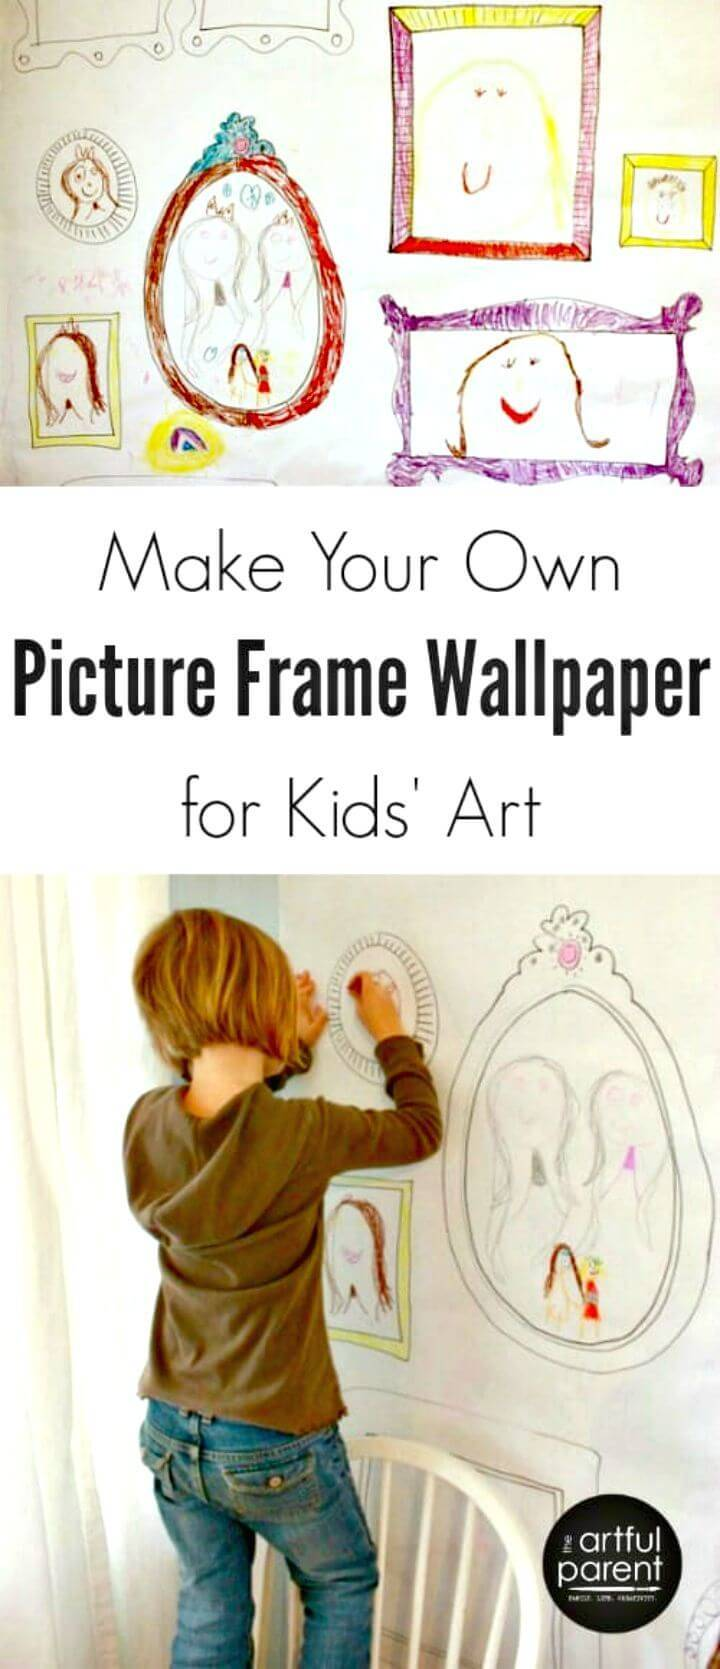 How To Make Your Own Picture Frame Wallpaper For Kids